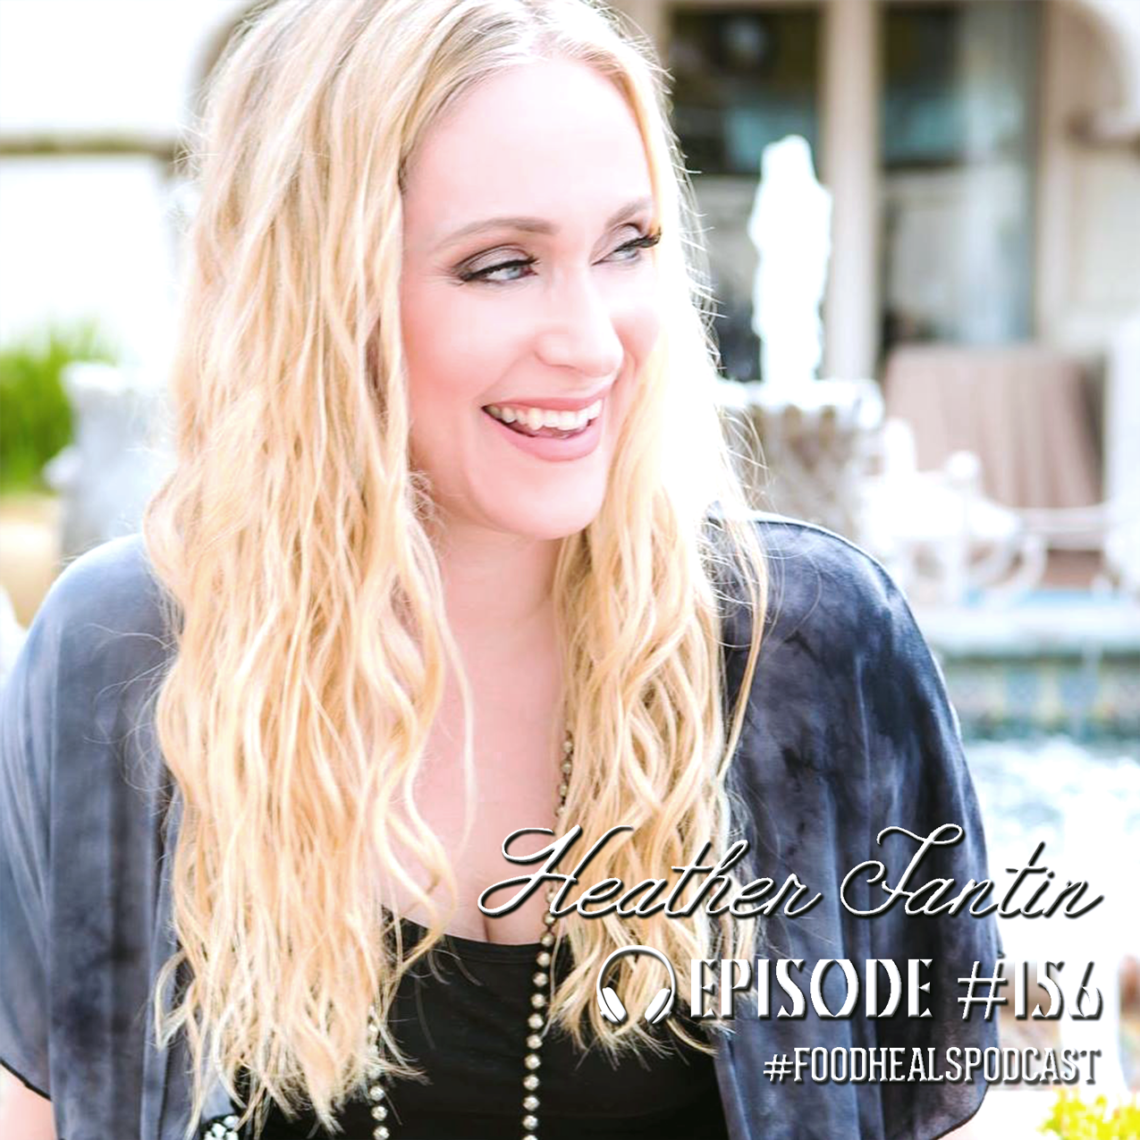 Heather Fantin on the Food Heals Podcast.